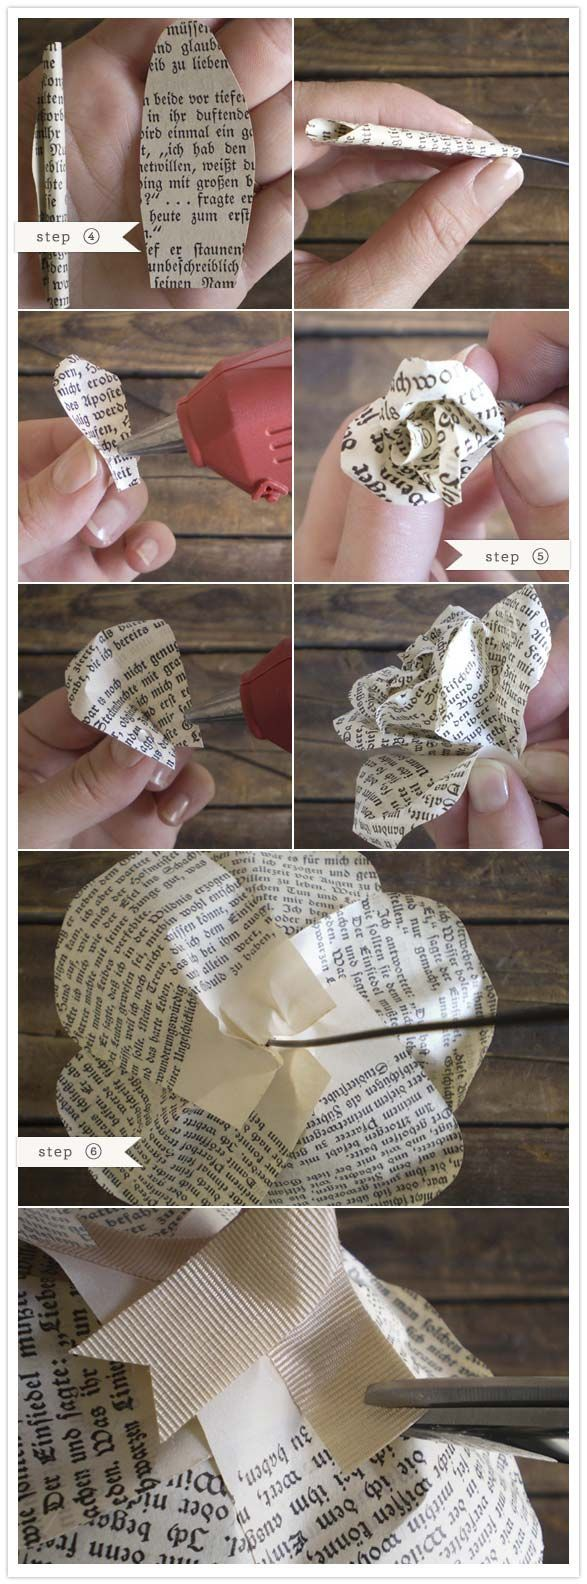 diy paper flowers: Books Pages, Paper Rose, Bridal Shower Decor, Wedding Bouquets, Diy Tutorials, Paper Flowers, Pretty Flowers, Make Flowers, Old Books